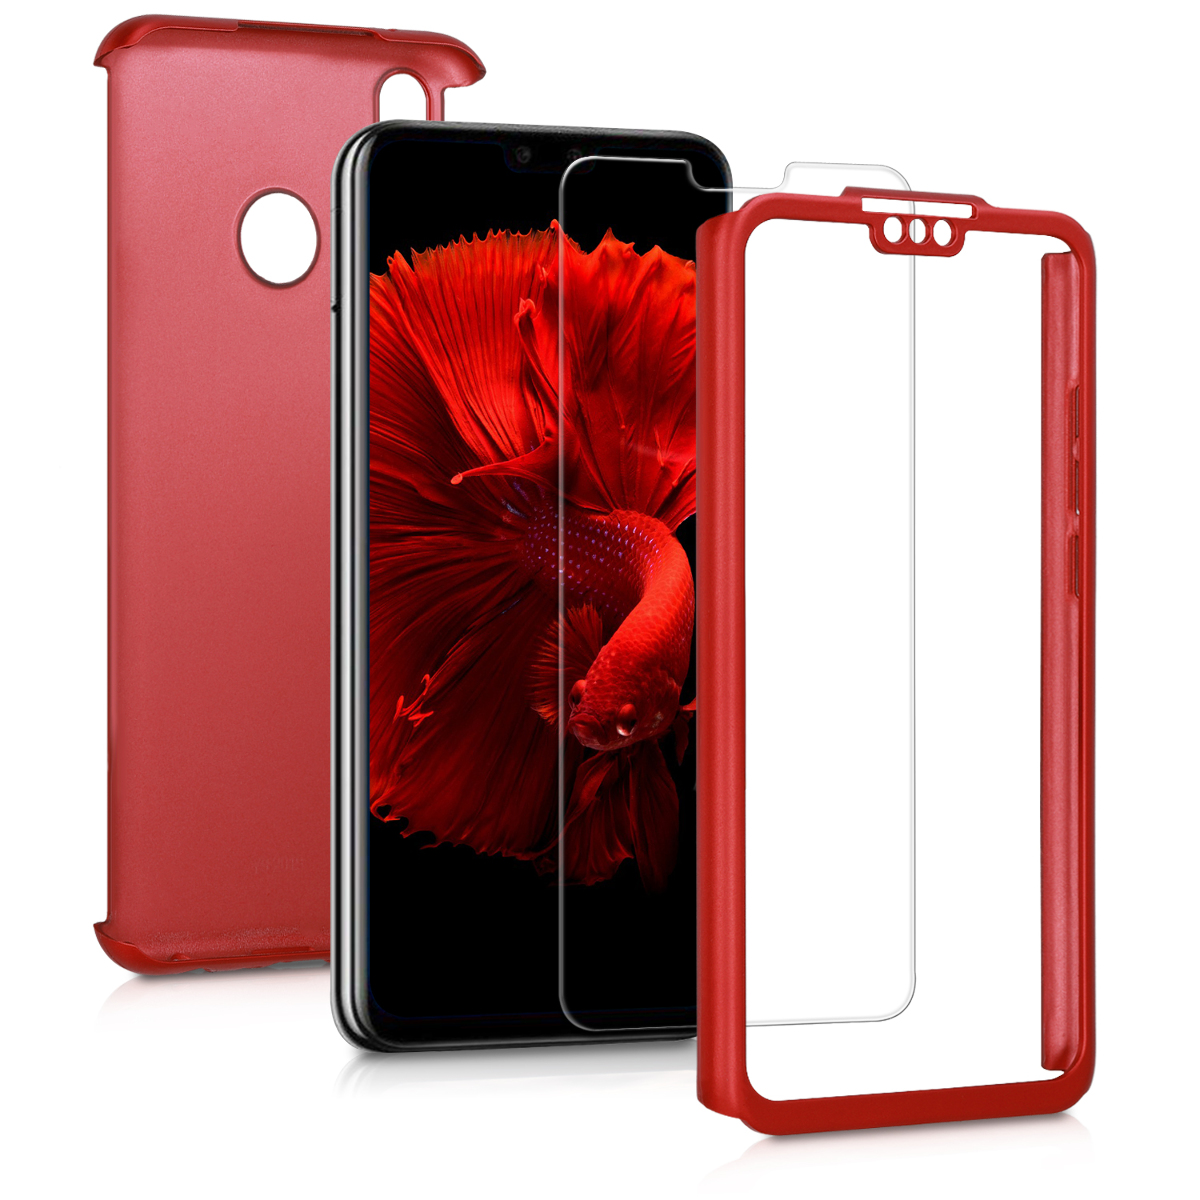 KW Θήκη Full Body Huawei Y9 2019 & Tempered Glass - Metallic Dark Red (48889.36)